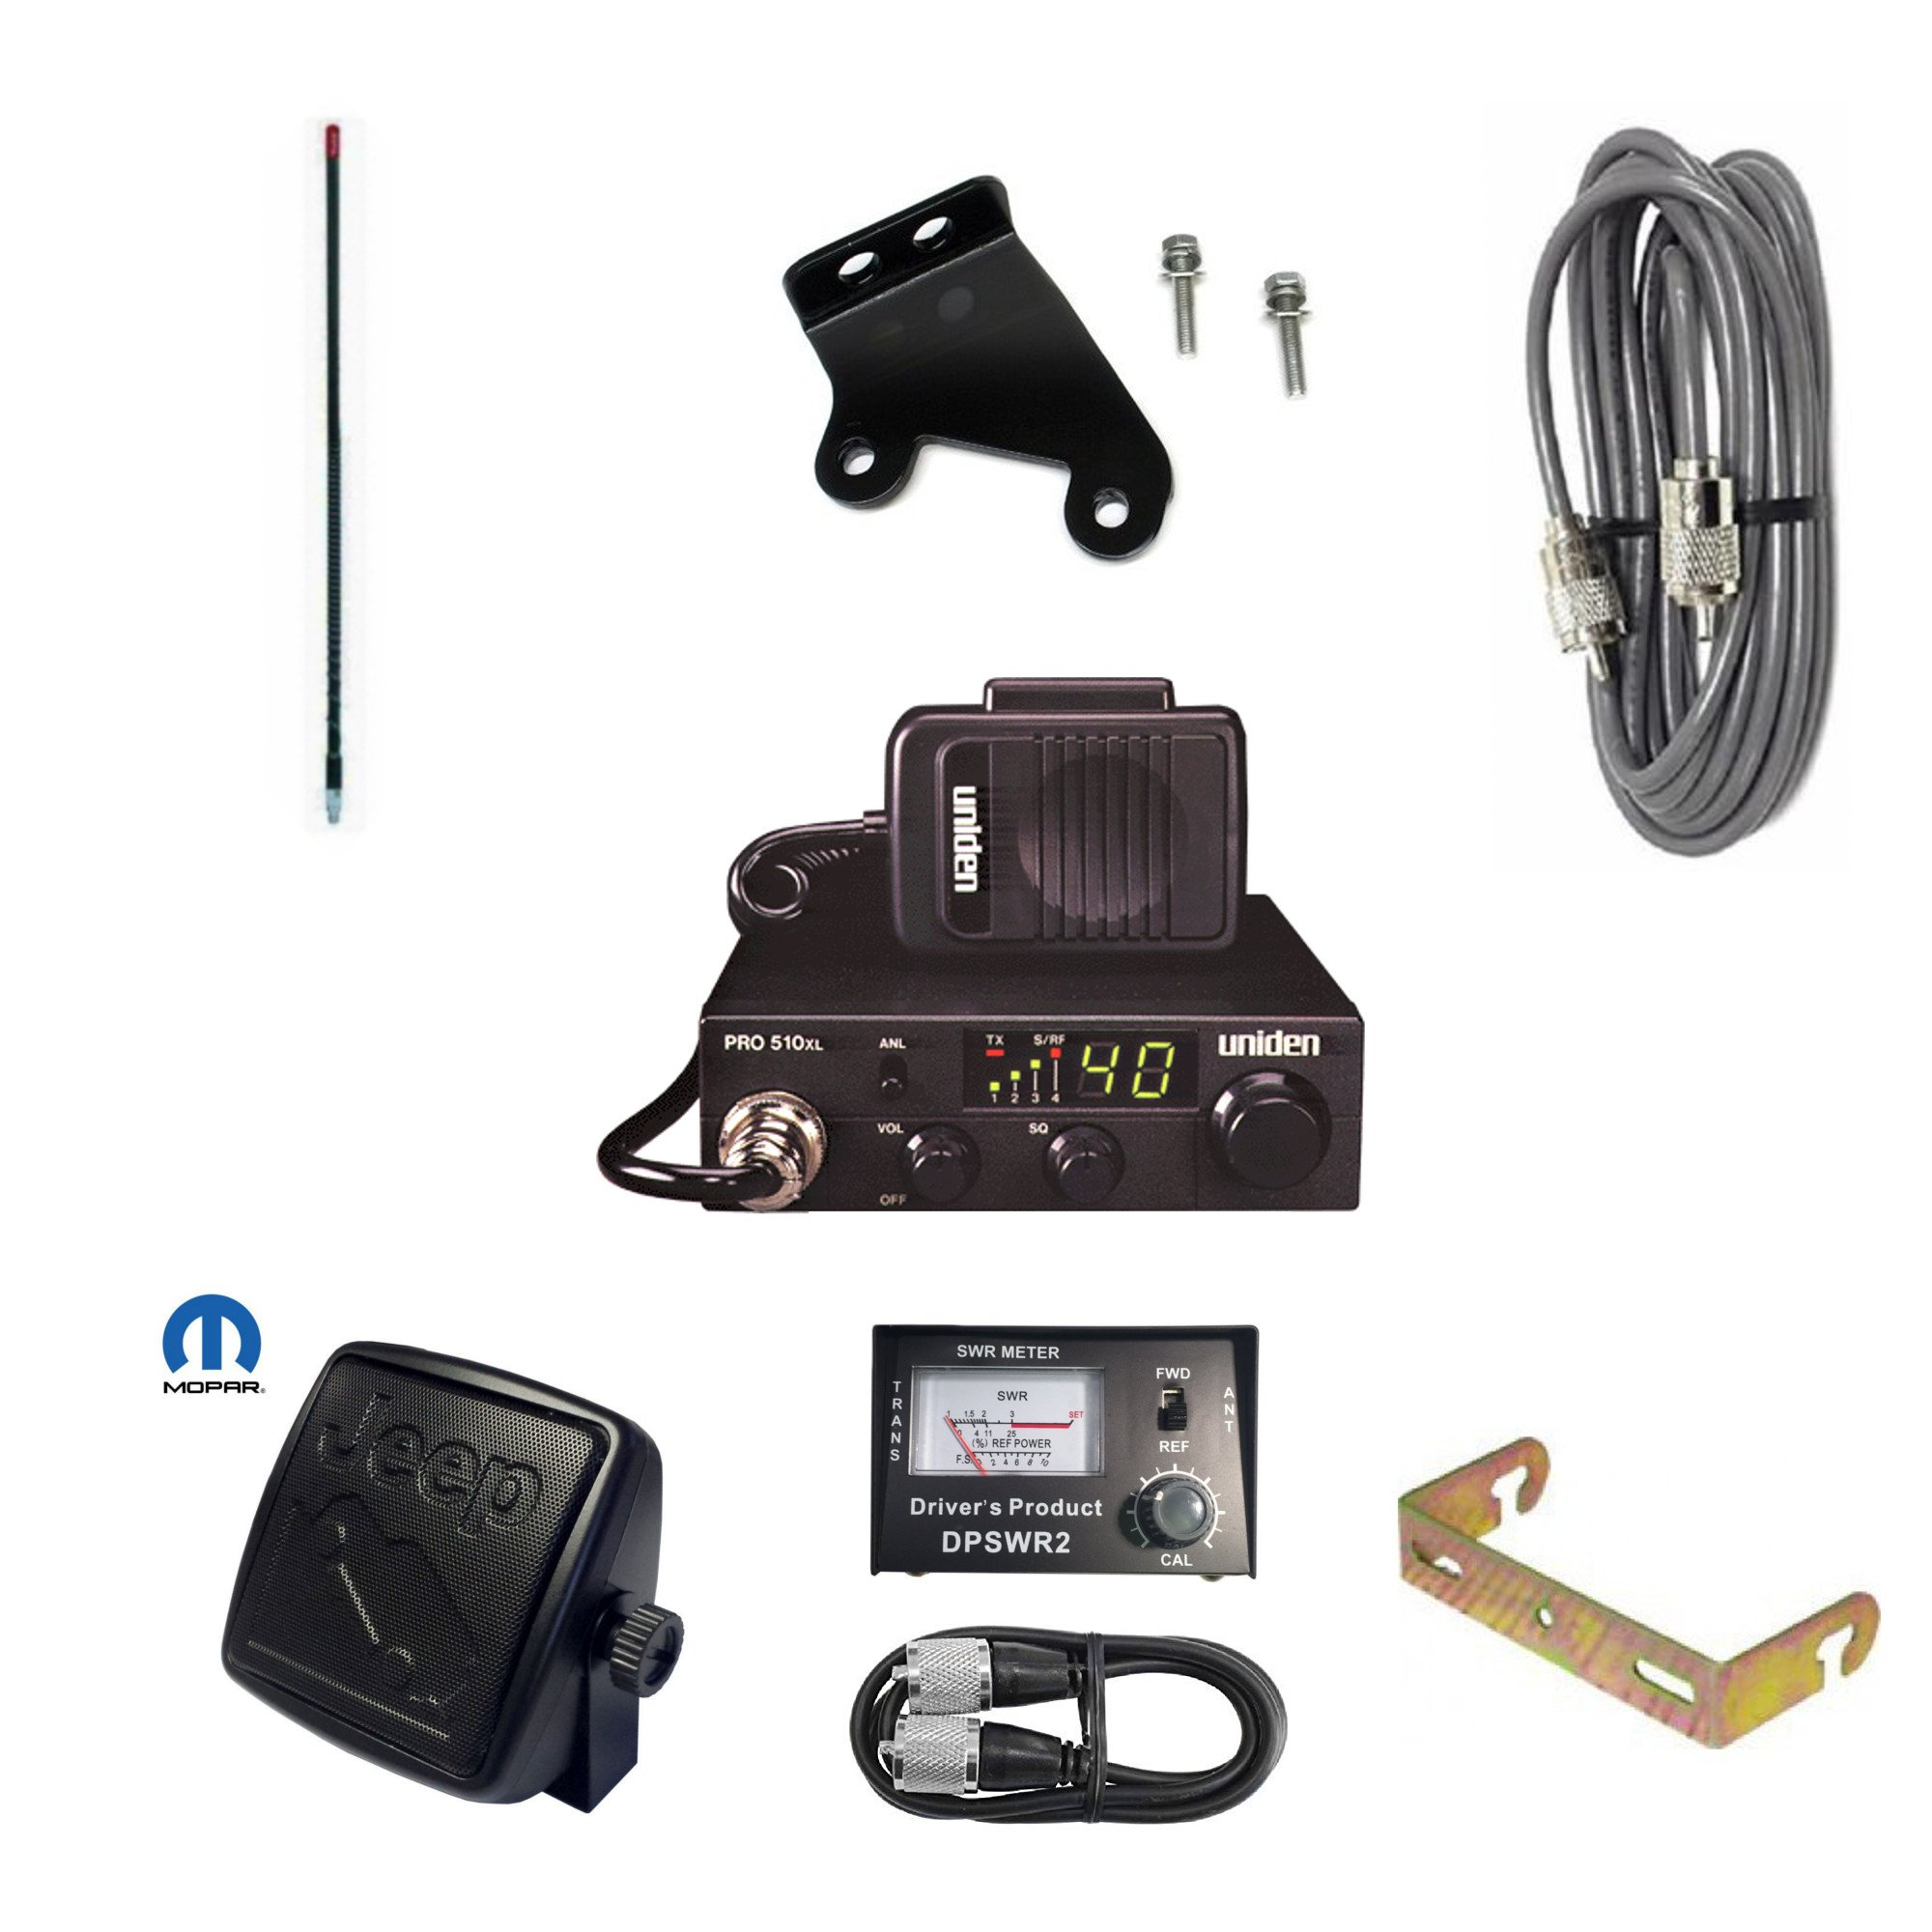 Pro Trucker JK Jeep CB Radio Kit With CB Radio, Firestik Antenna, Radio Mount, Antenna Mount, Stud, Coax, SWR Meter With Jumper Cable, And Mopar Jeep Speaker - Black